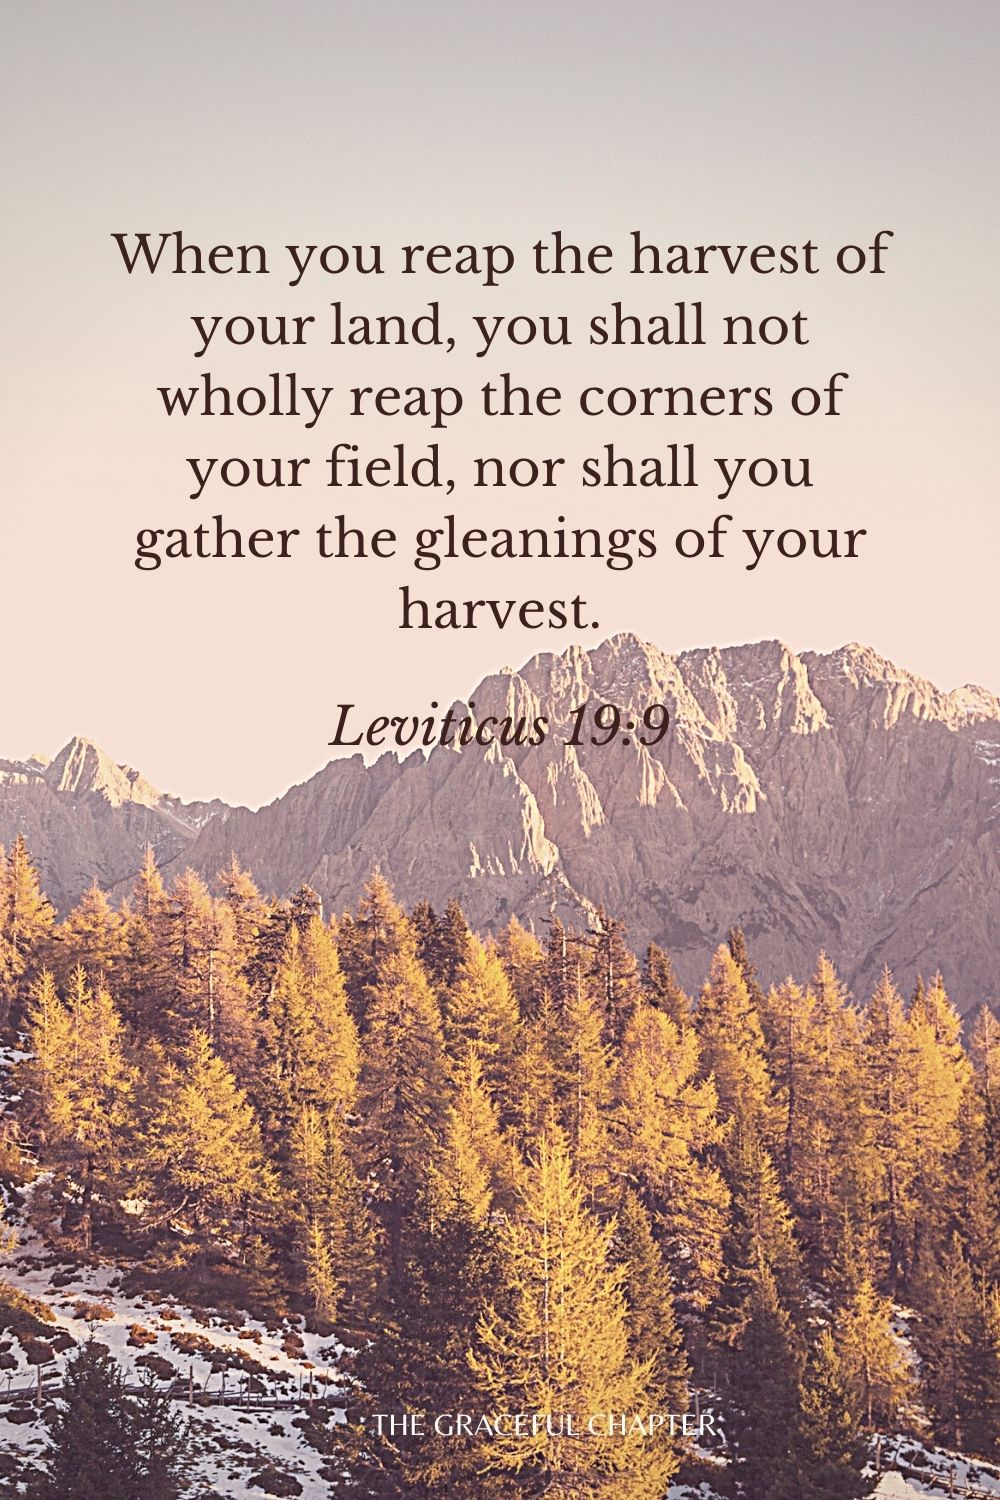 When you reap the harvest of your land, you shall not wholly reap the corners of your field, nor shall you gather the gleanings of your harvest. Leviticus 19:9